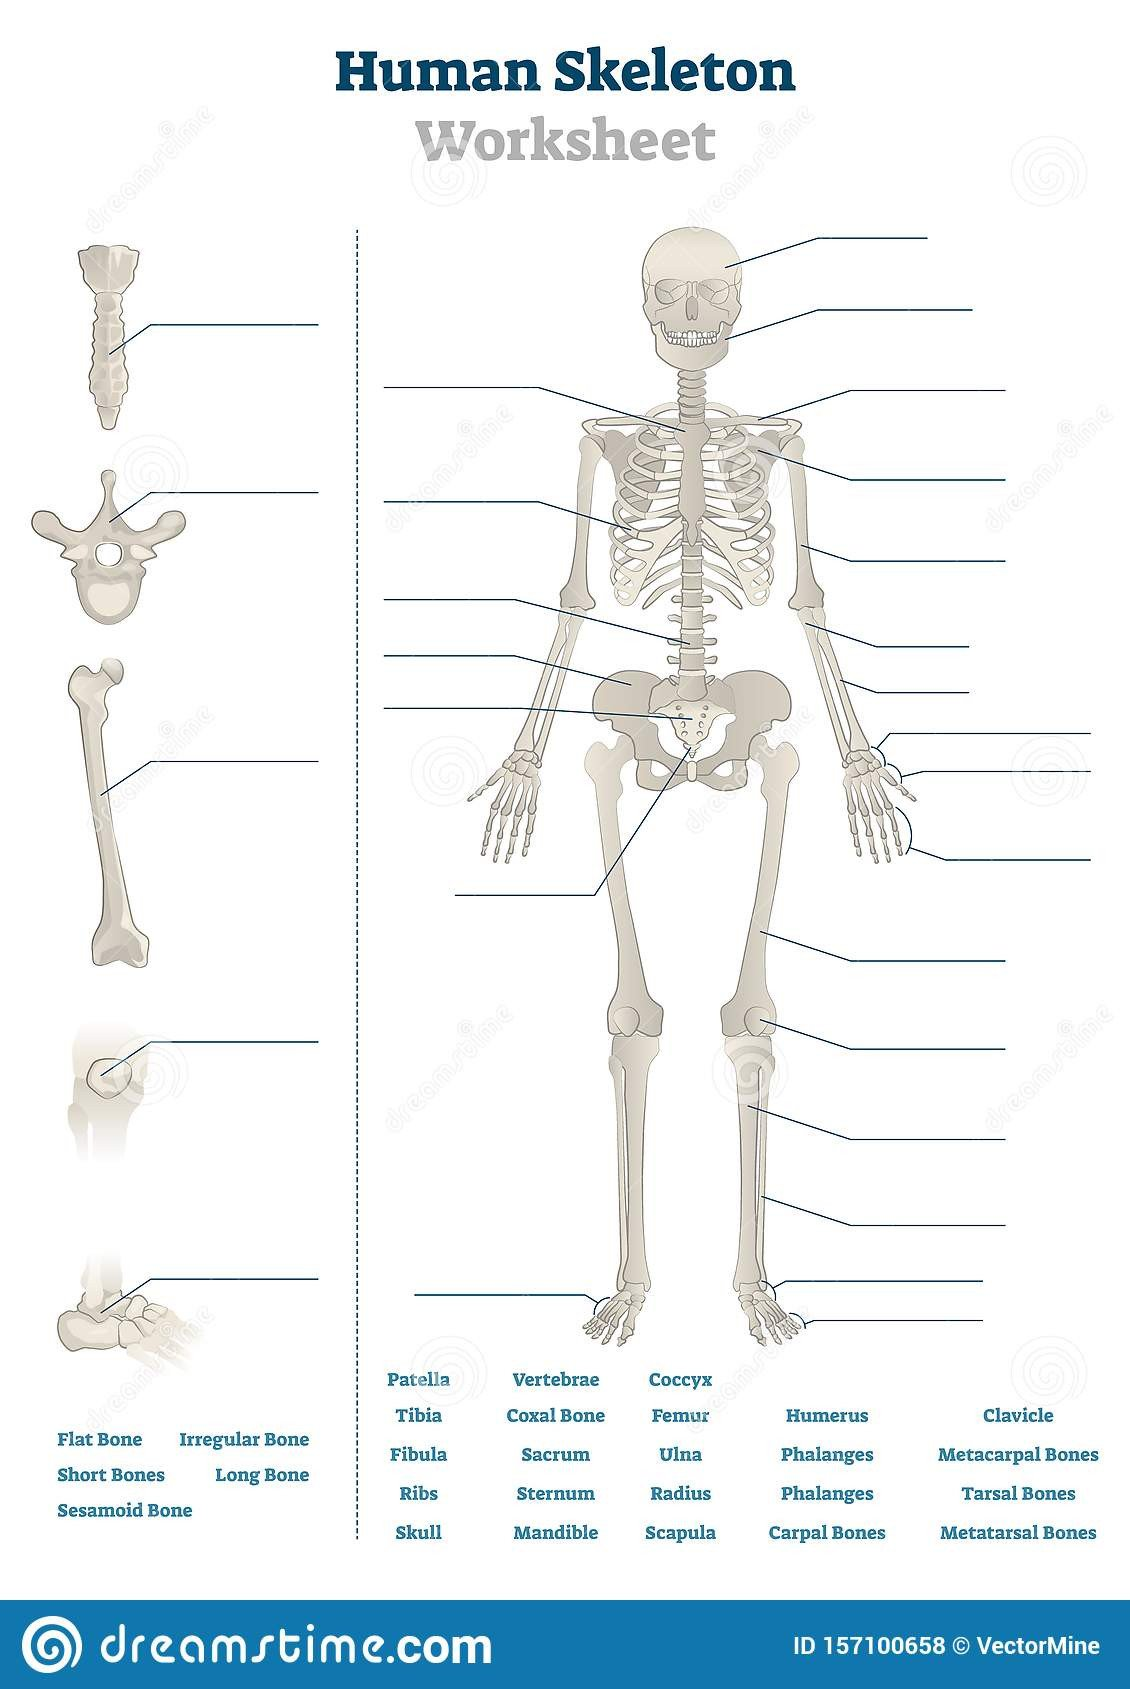 Blank Bone Worksheets Human Skeleton Worksheet Vector Illustration Blank